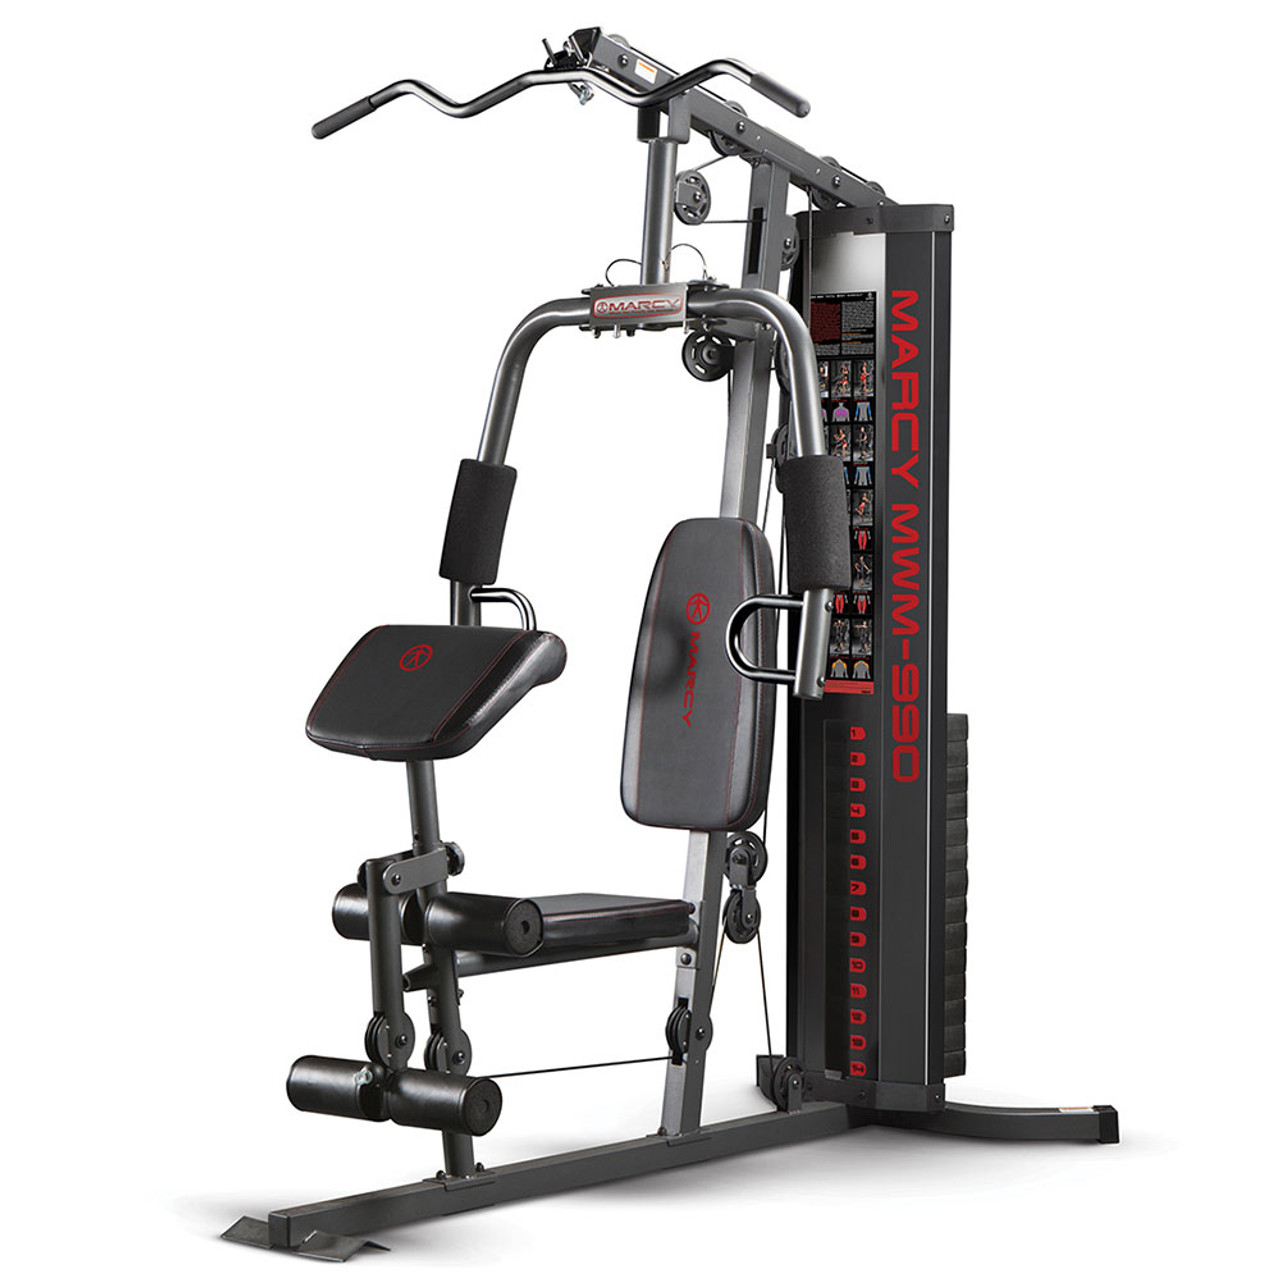 The Total Gym is your all-in-one home gym equipment with over 80 exercise options. Get stronger, leaner and healthier in less than 20 minutes a day.